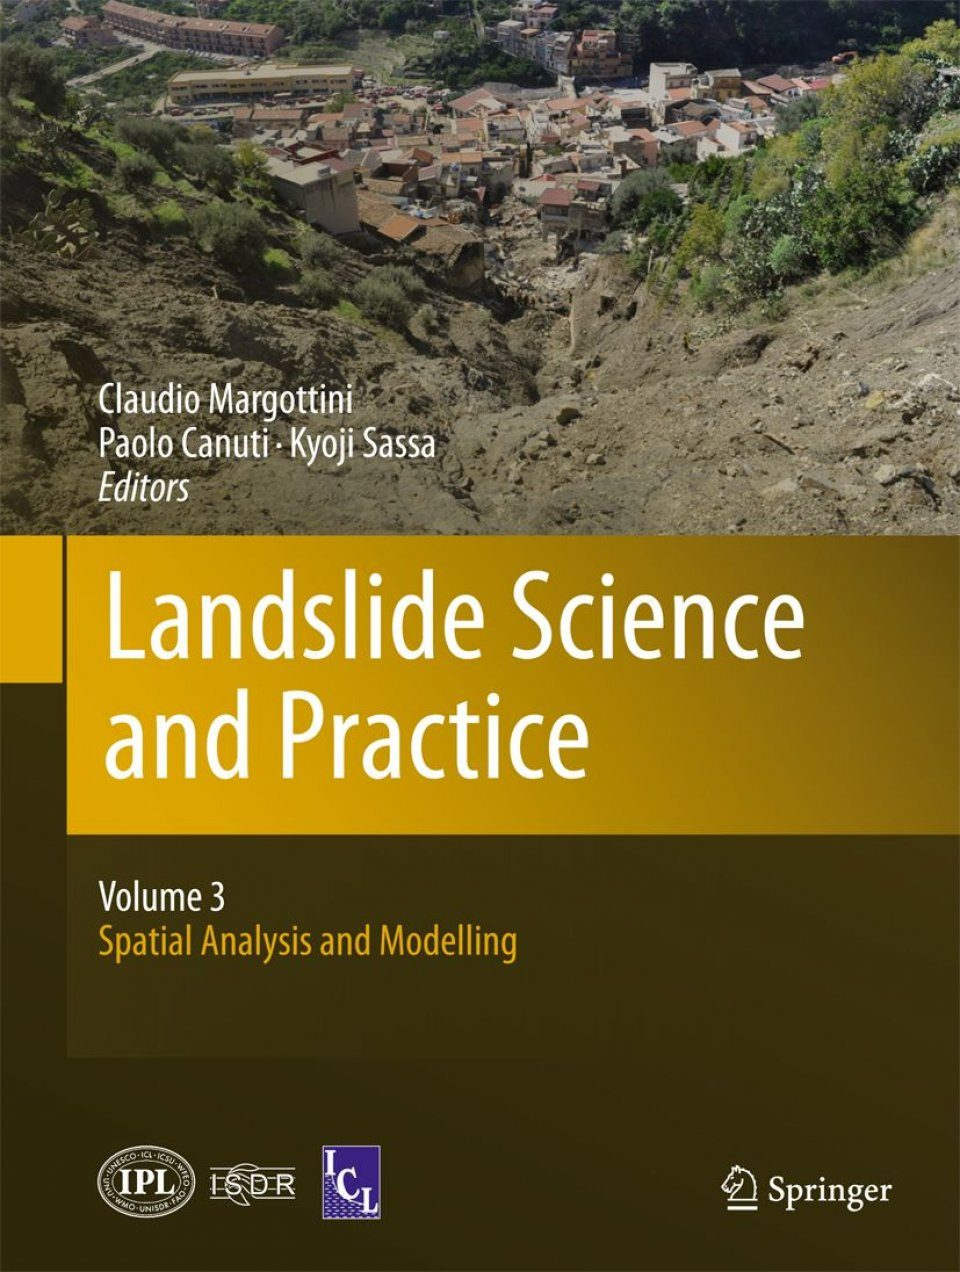 Landslide Science and Practice, Volume 3